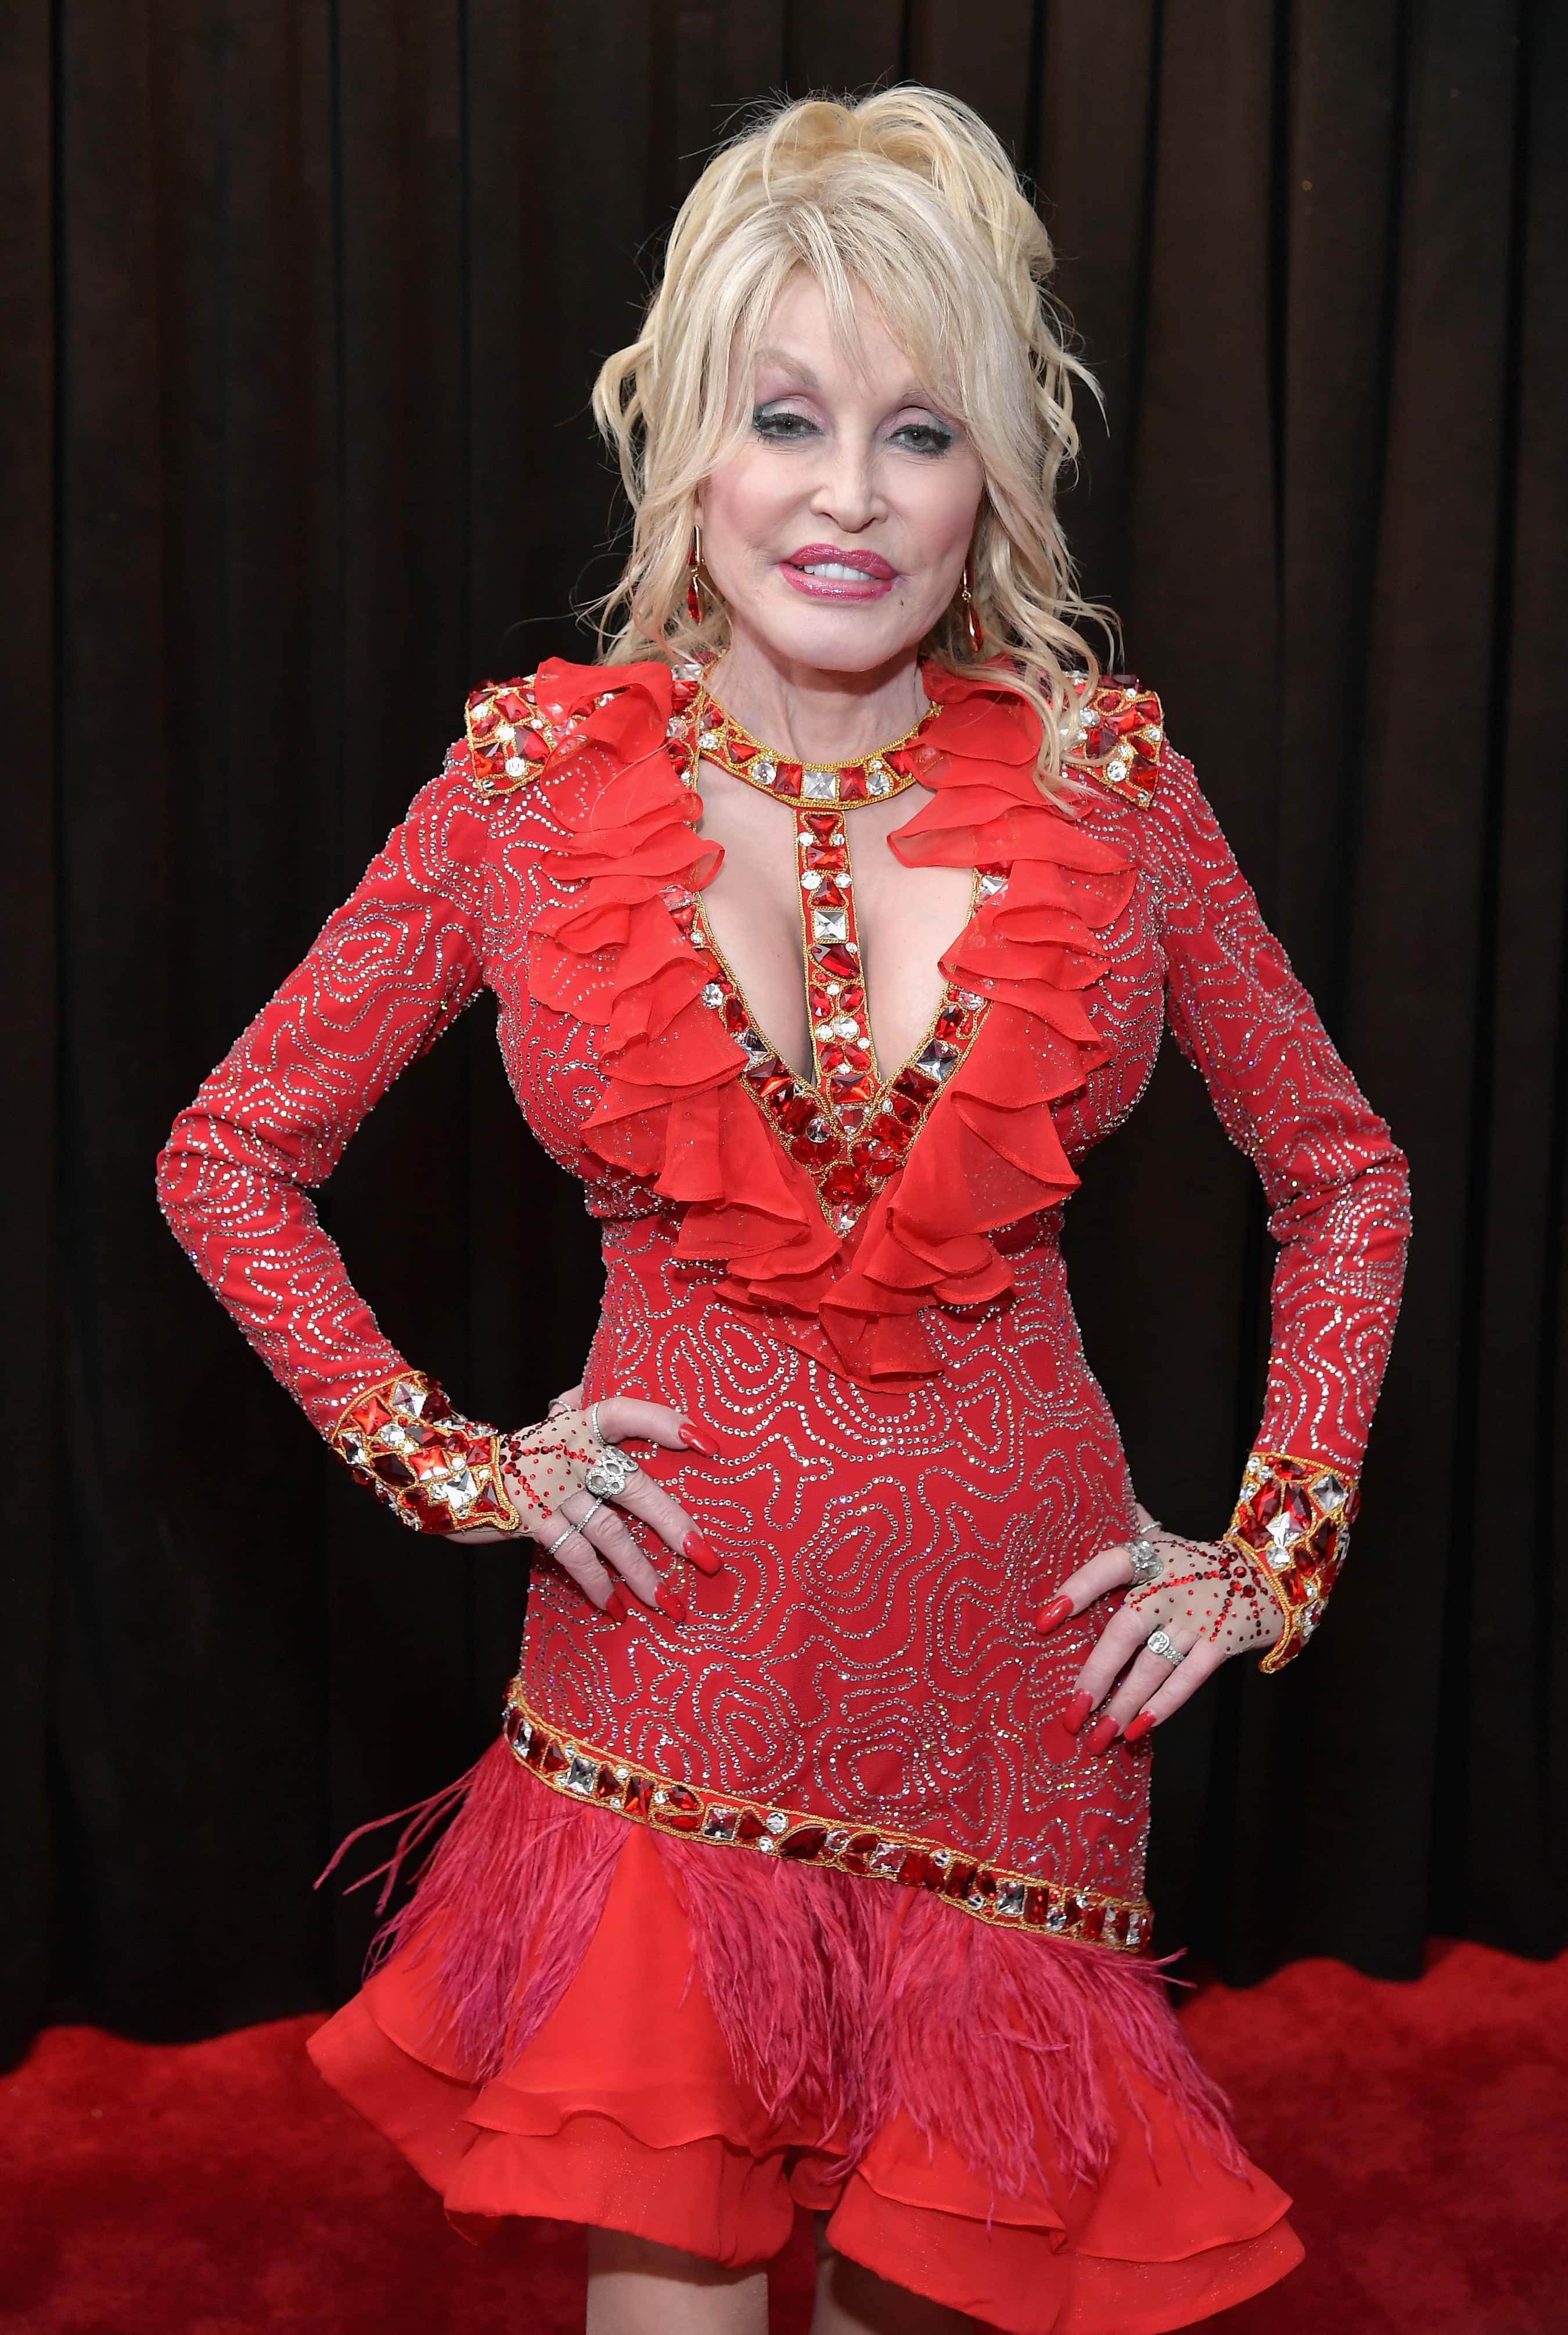 Dolly Parton's Heartstrings': Netflix anthology series